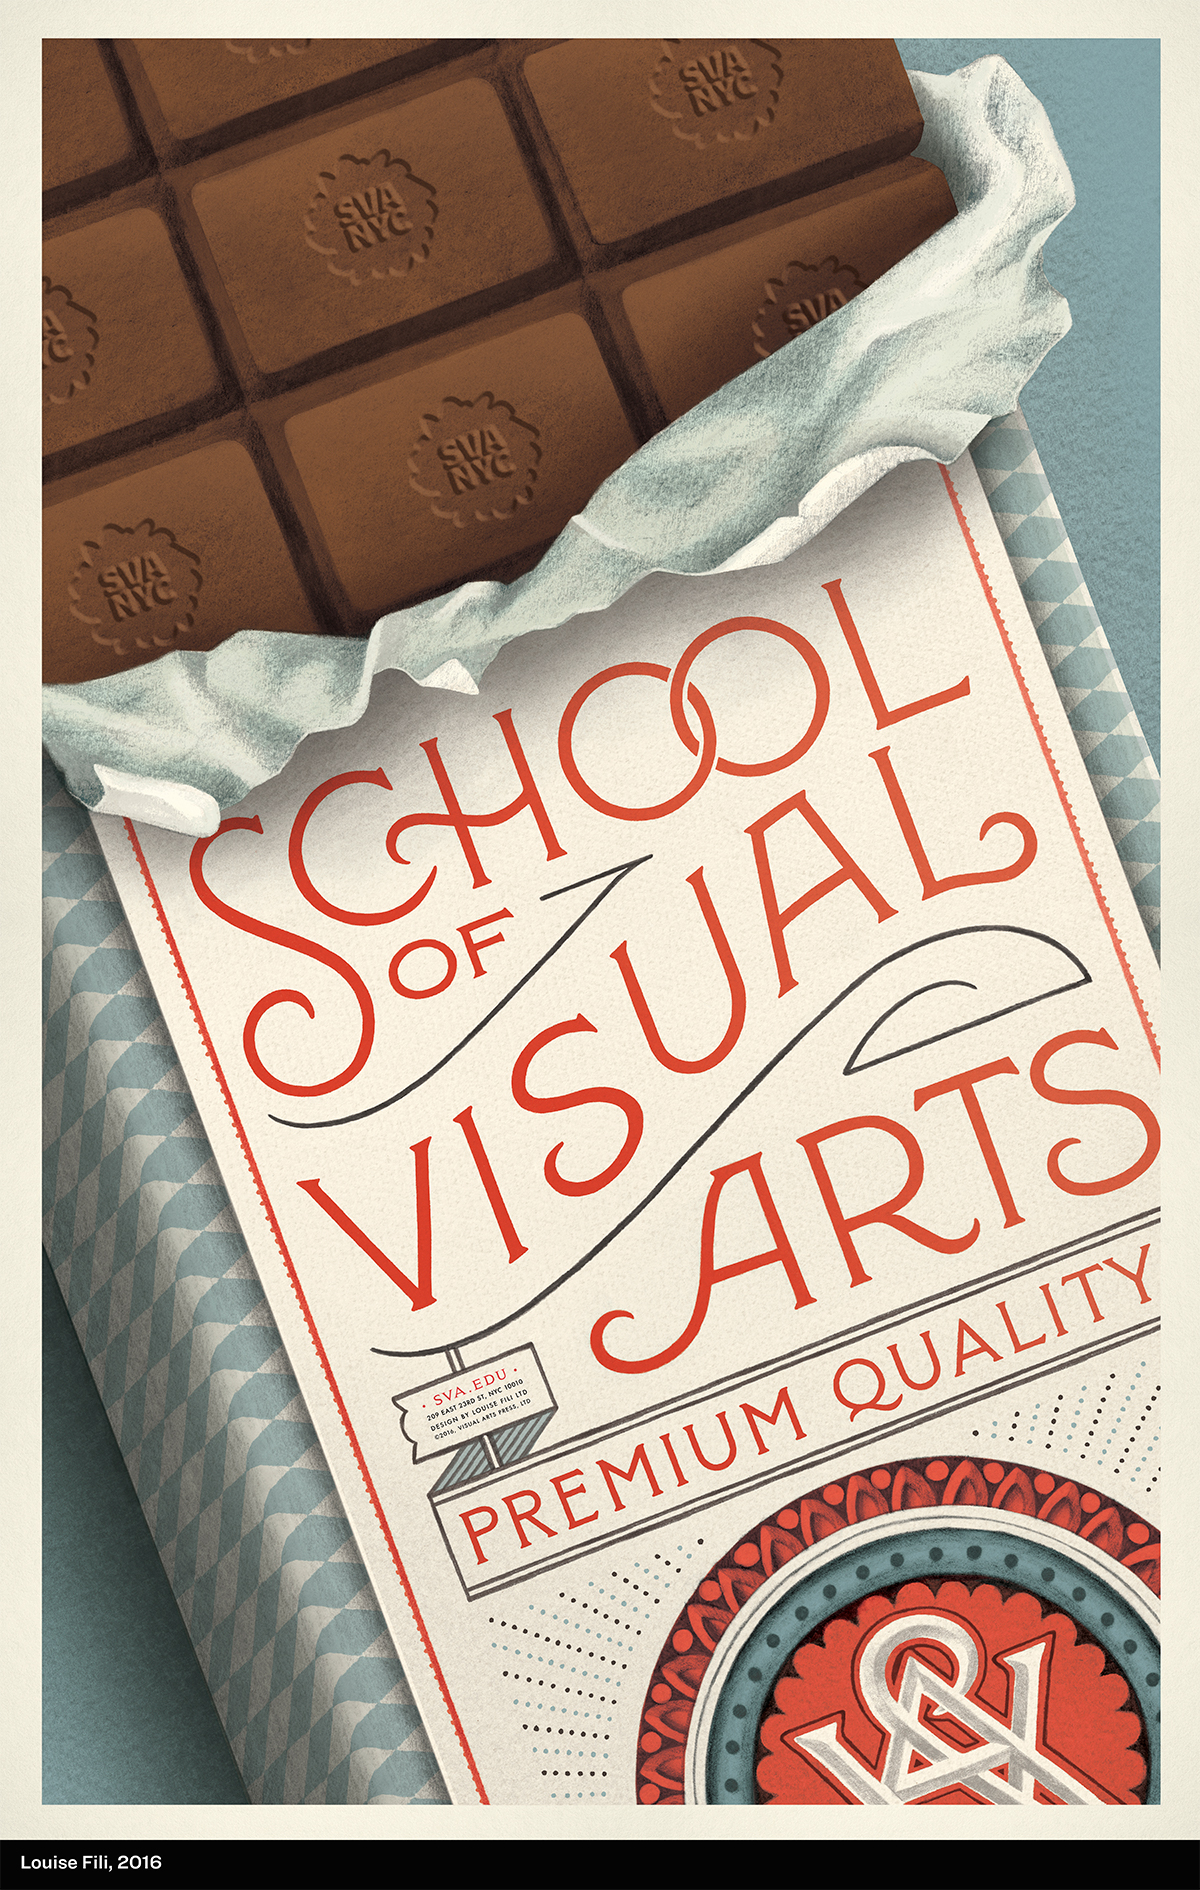 Poster advertising School of Visual Arts